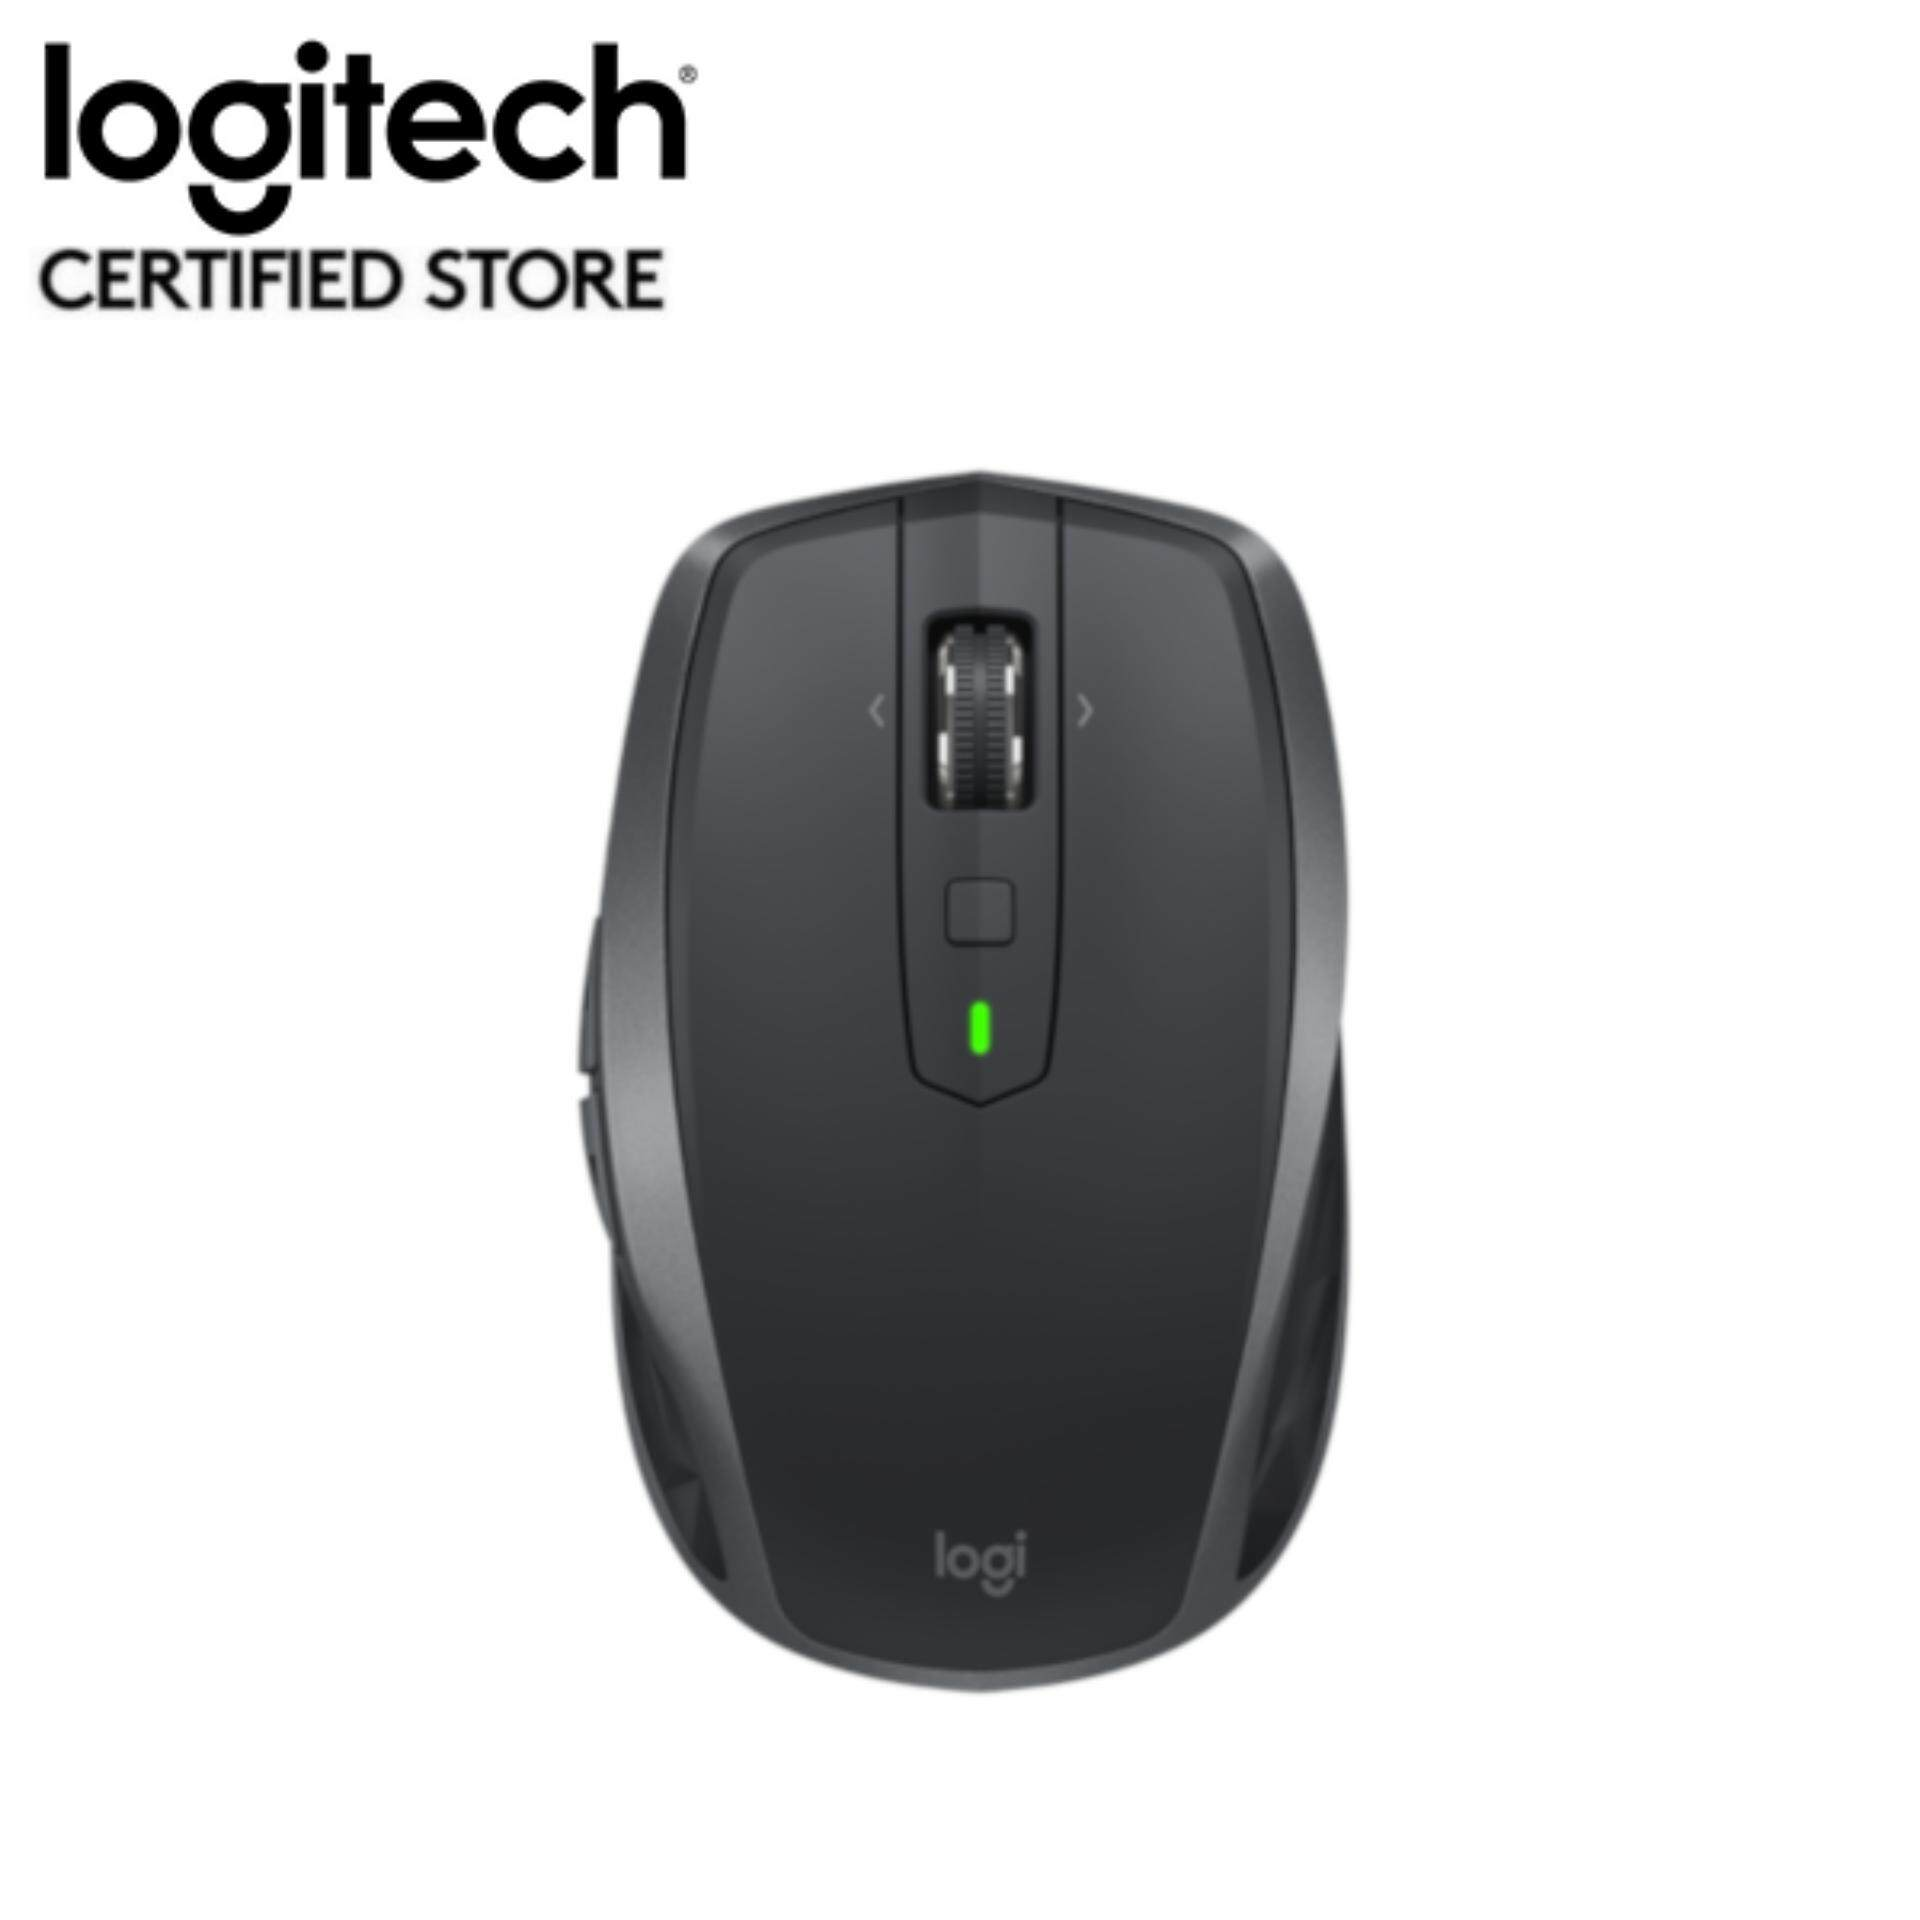 Logitech Computer Accessories Mice Price In Malaysia Best Mouse M105 Mx Anywhere 2s Wireless 910 005156